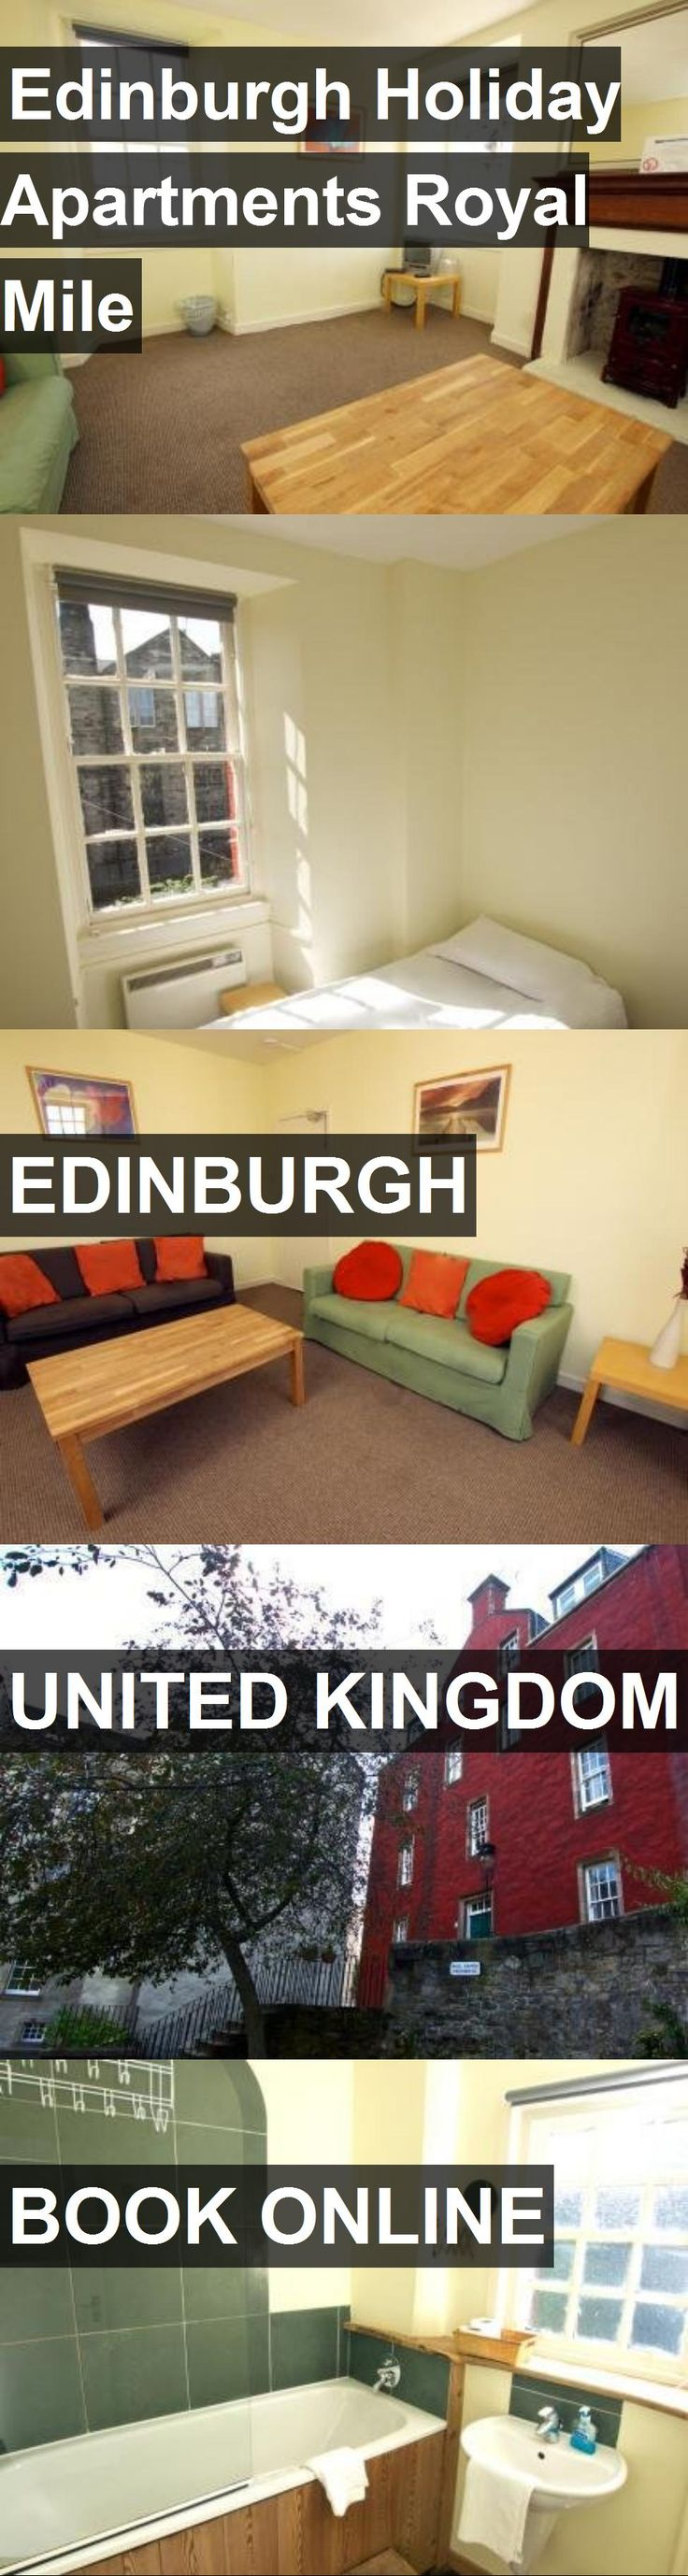 Edinburgh Holiday Apartments Royal Mile in Edinburgh, United Kingdom. For more information, photos, reviews and best prices please follow the link. #UnitedKingdom #Edinburgh #travel #vacation #apartment